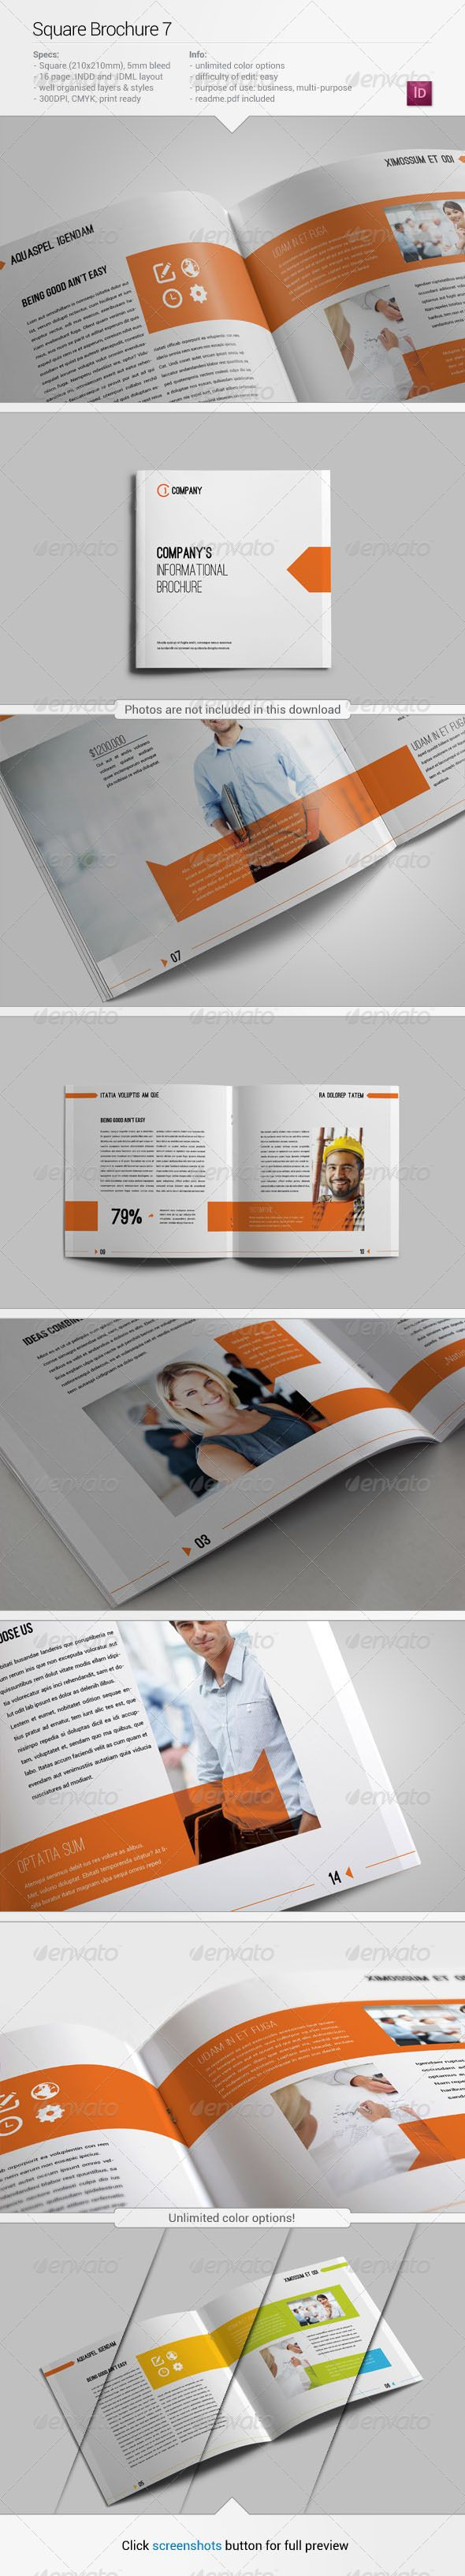 Square Brochure 7 #GraphicRiver Specifications: + 16 pages, + 210×210mm, + 300 dpi, + CMYK, + 5mm bleeds, + Unlimited color Yes MinimumAdobeCSVersion: CS4 PrintDimensions: 210x210